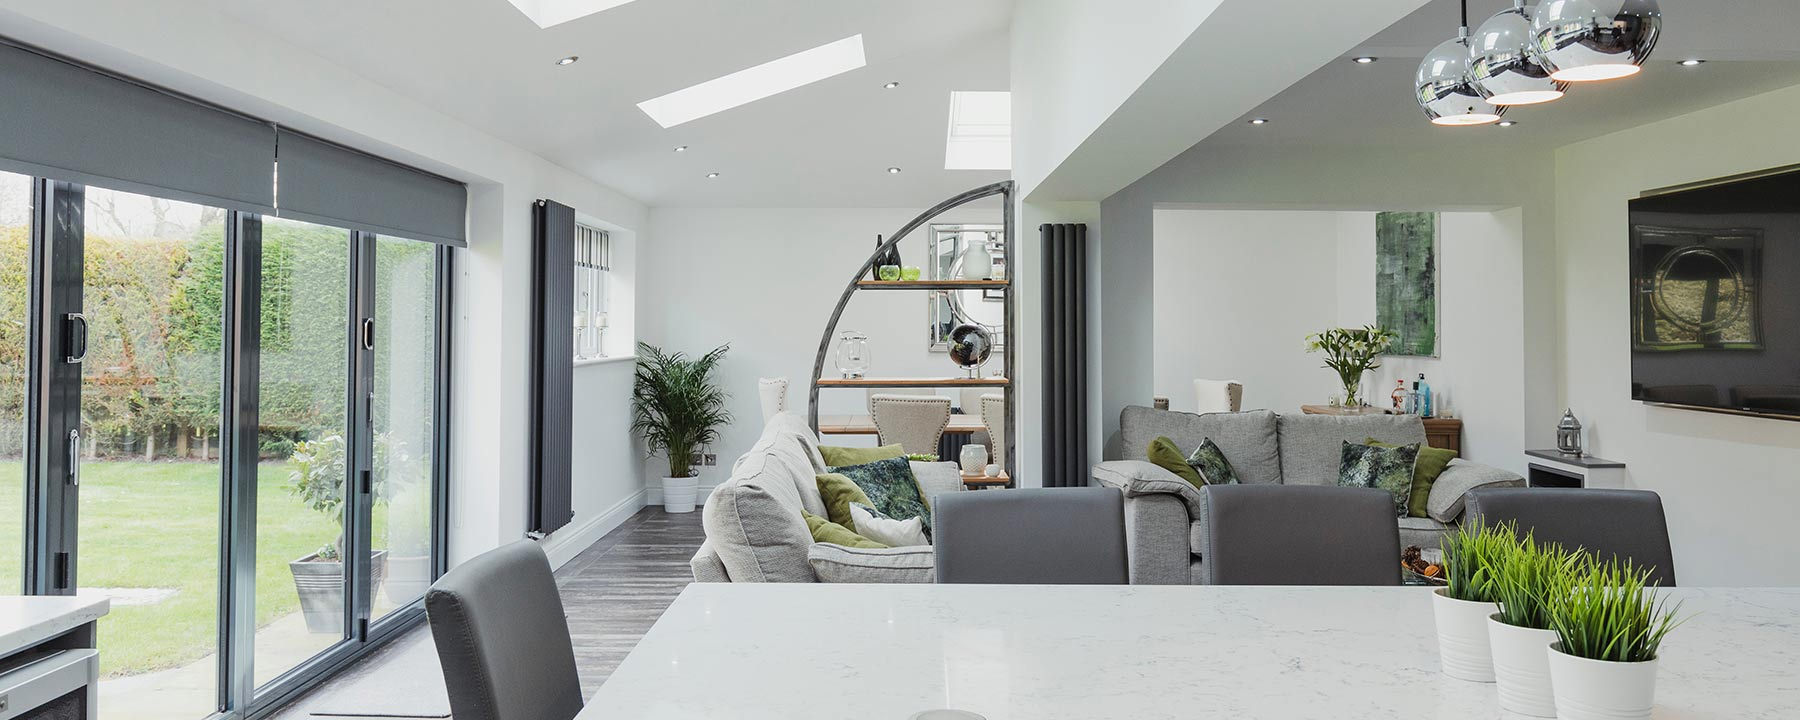 open-plan-living-home-extension-in-london